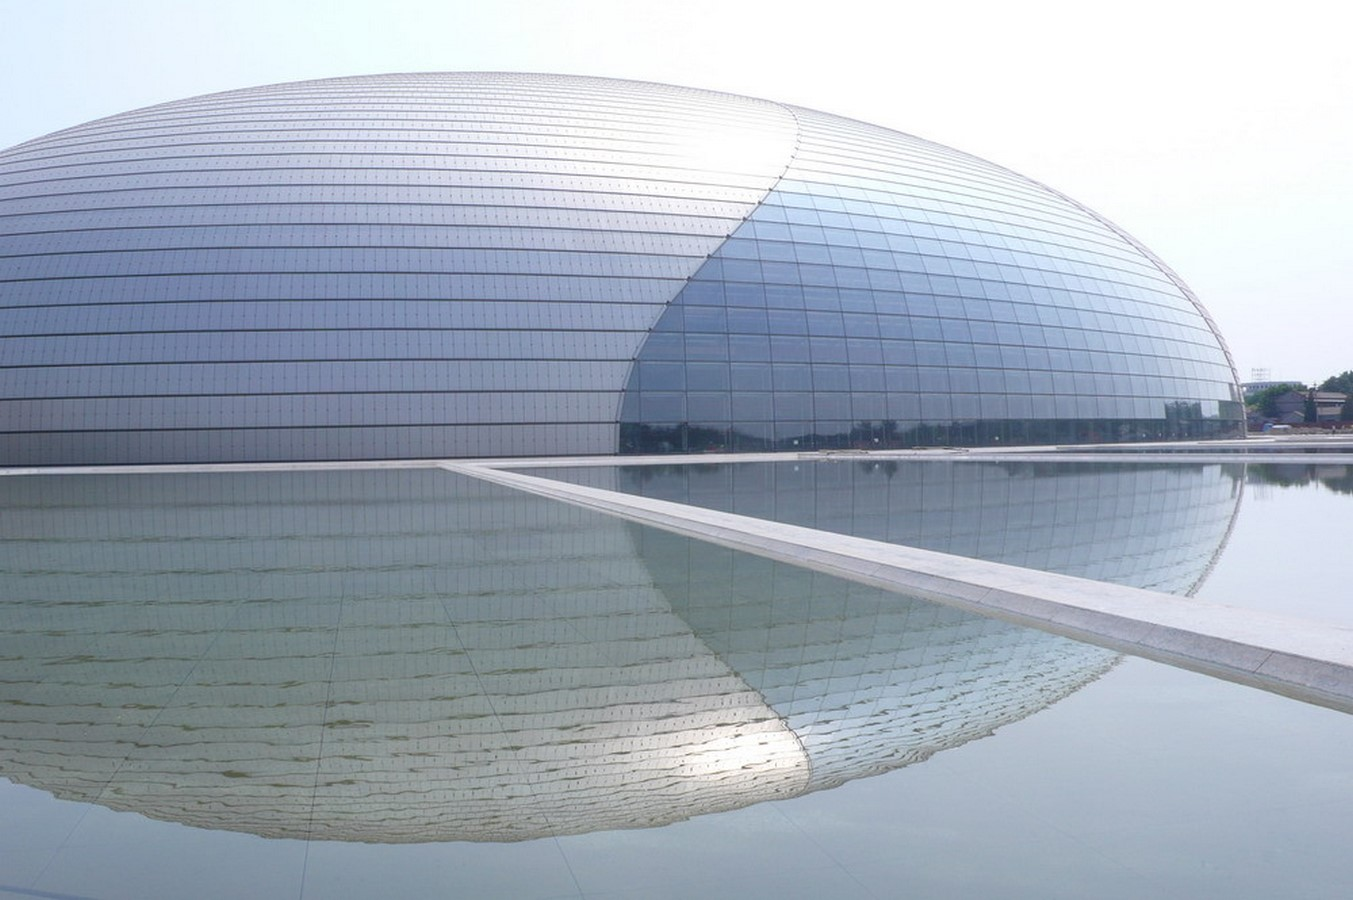 National Centre For The Performing Arts by Paul Andreu: Situated in the heart of Beijing - Sheet4